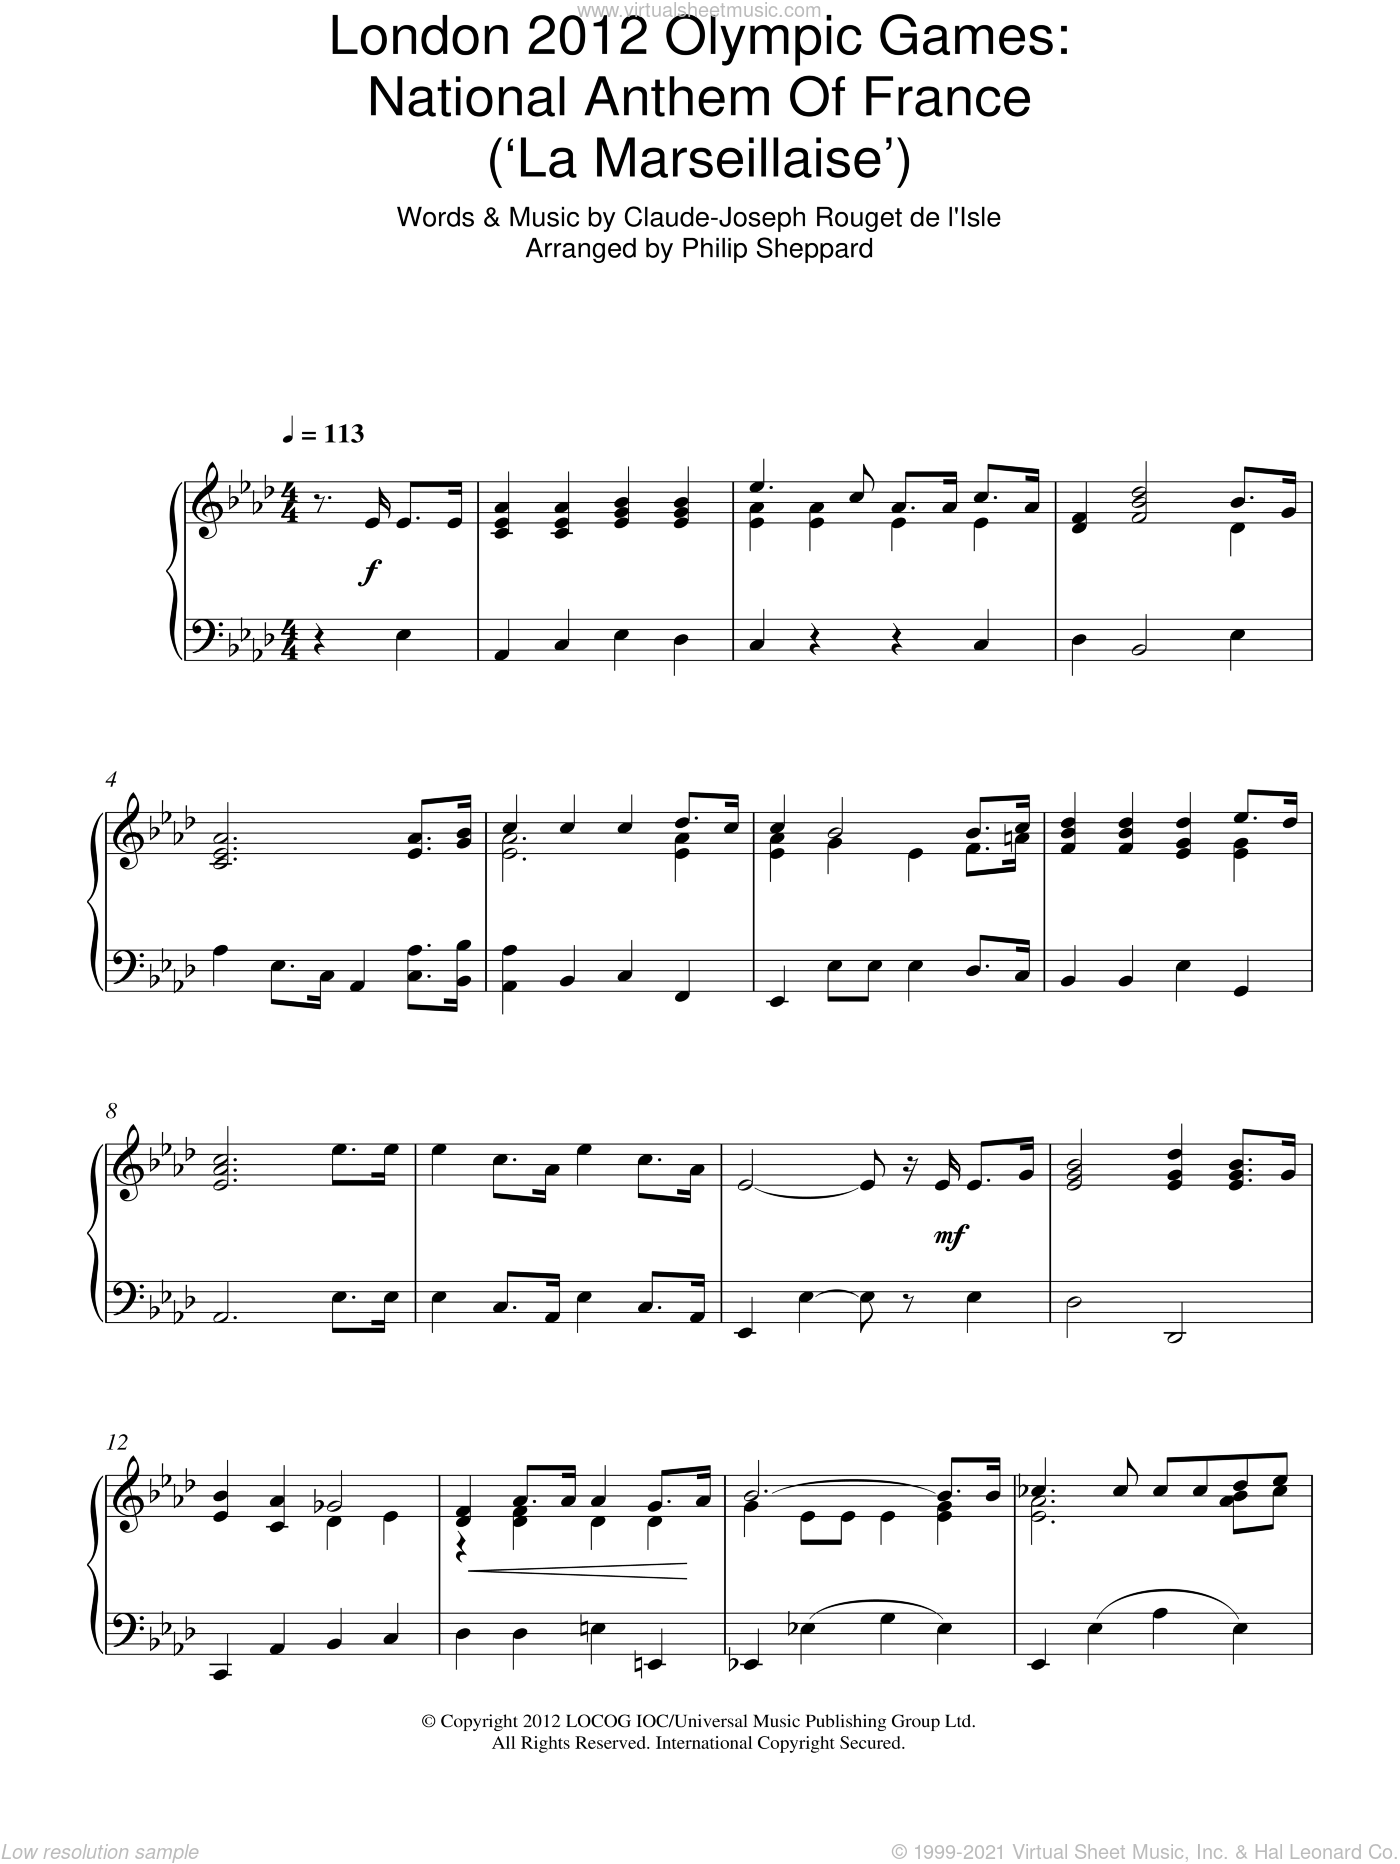 London 2012 Olympic Games: National Anthem Of France ('La Marseillaise') sheet music for piano solo by Philip Sheppard and Claude Rouget de Lisle, intermediate skill level